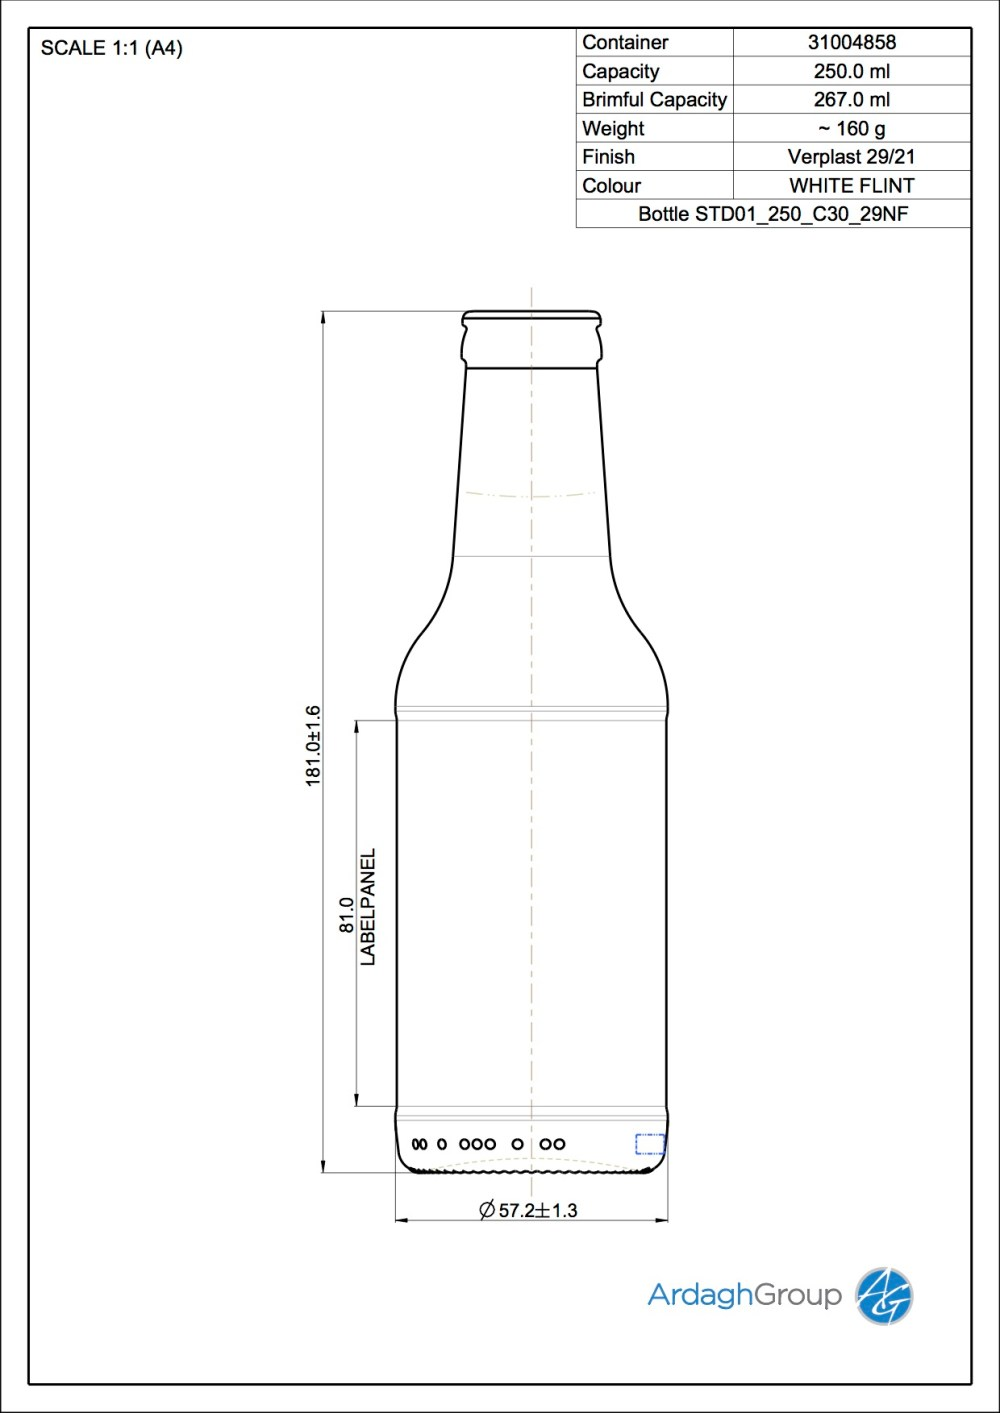 medium resolution of bottle std01 250 c30 29nf